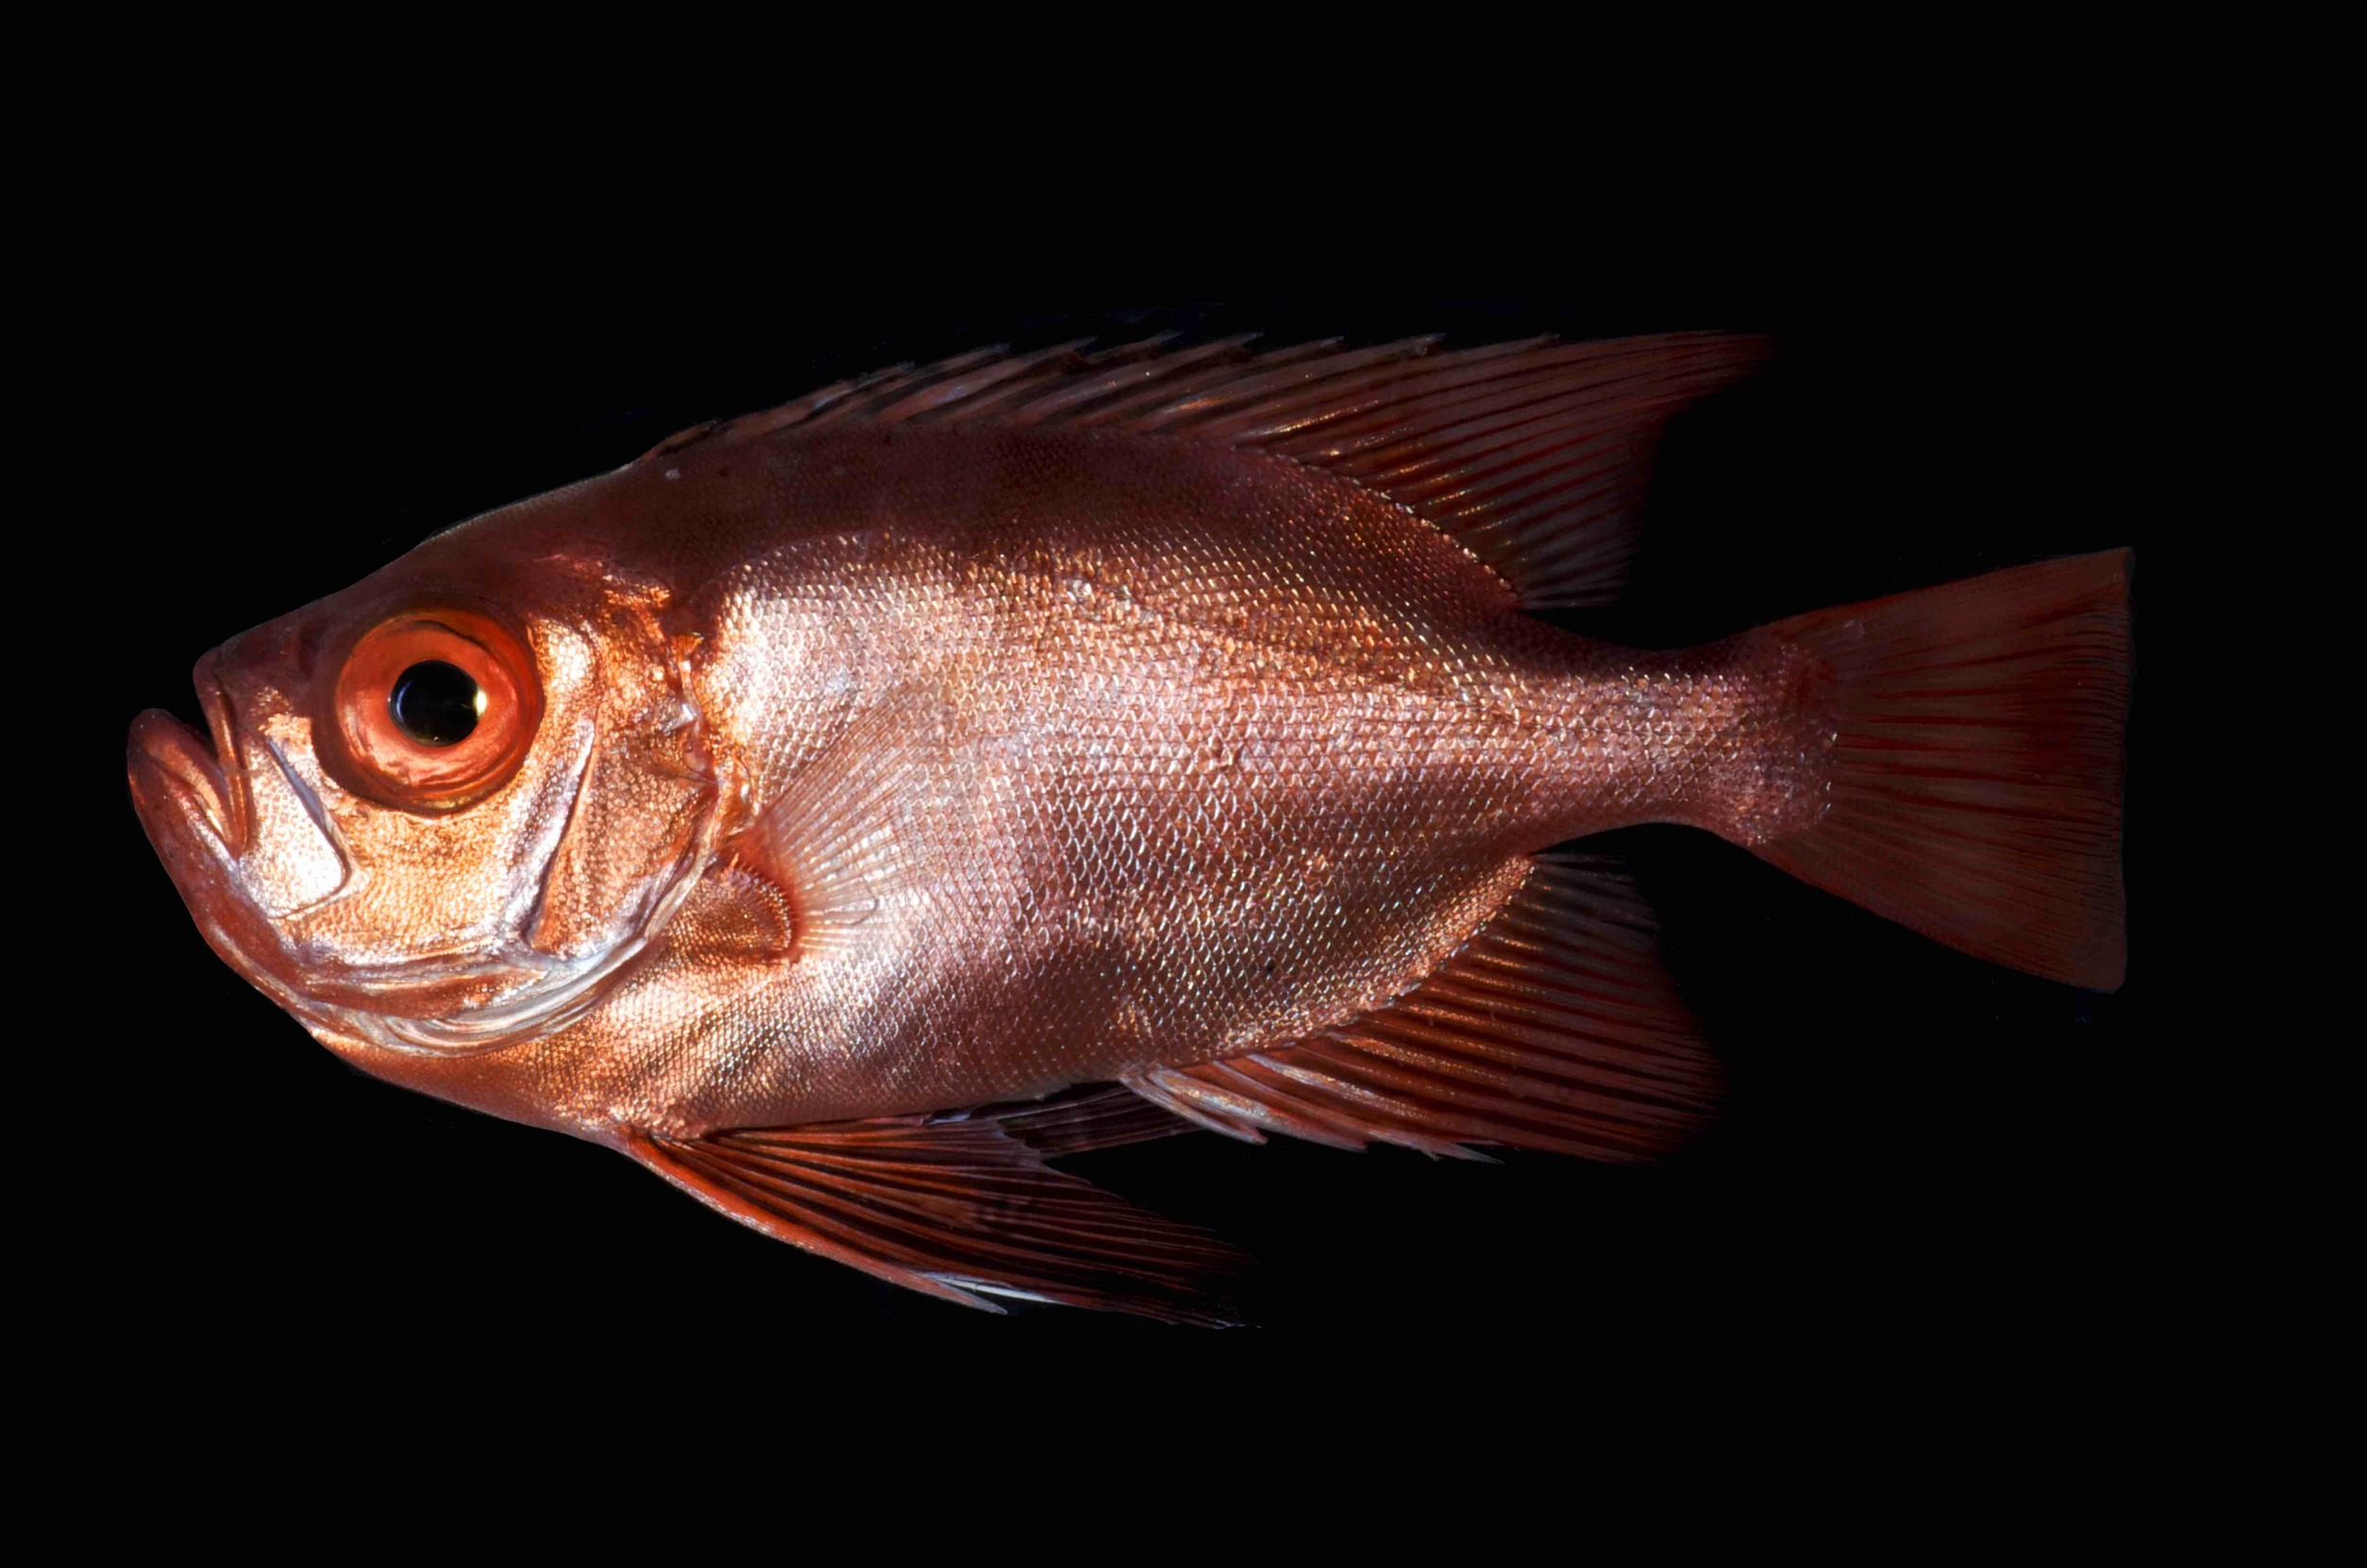 The Bulleye   Cookeolus japonicus fishes are typically found in waters deeper than 300ft.